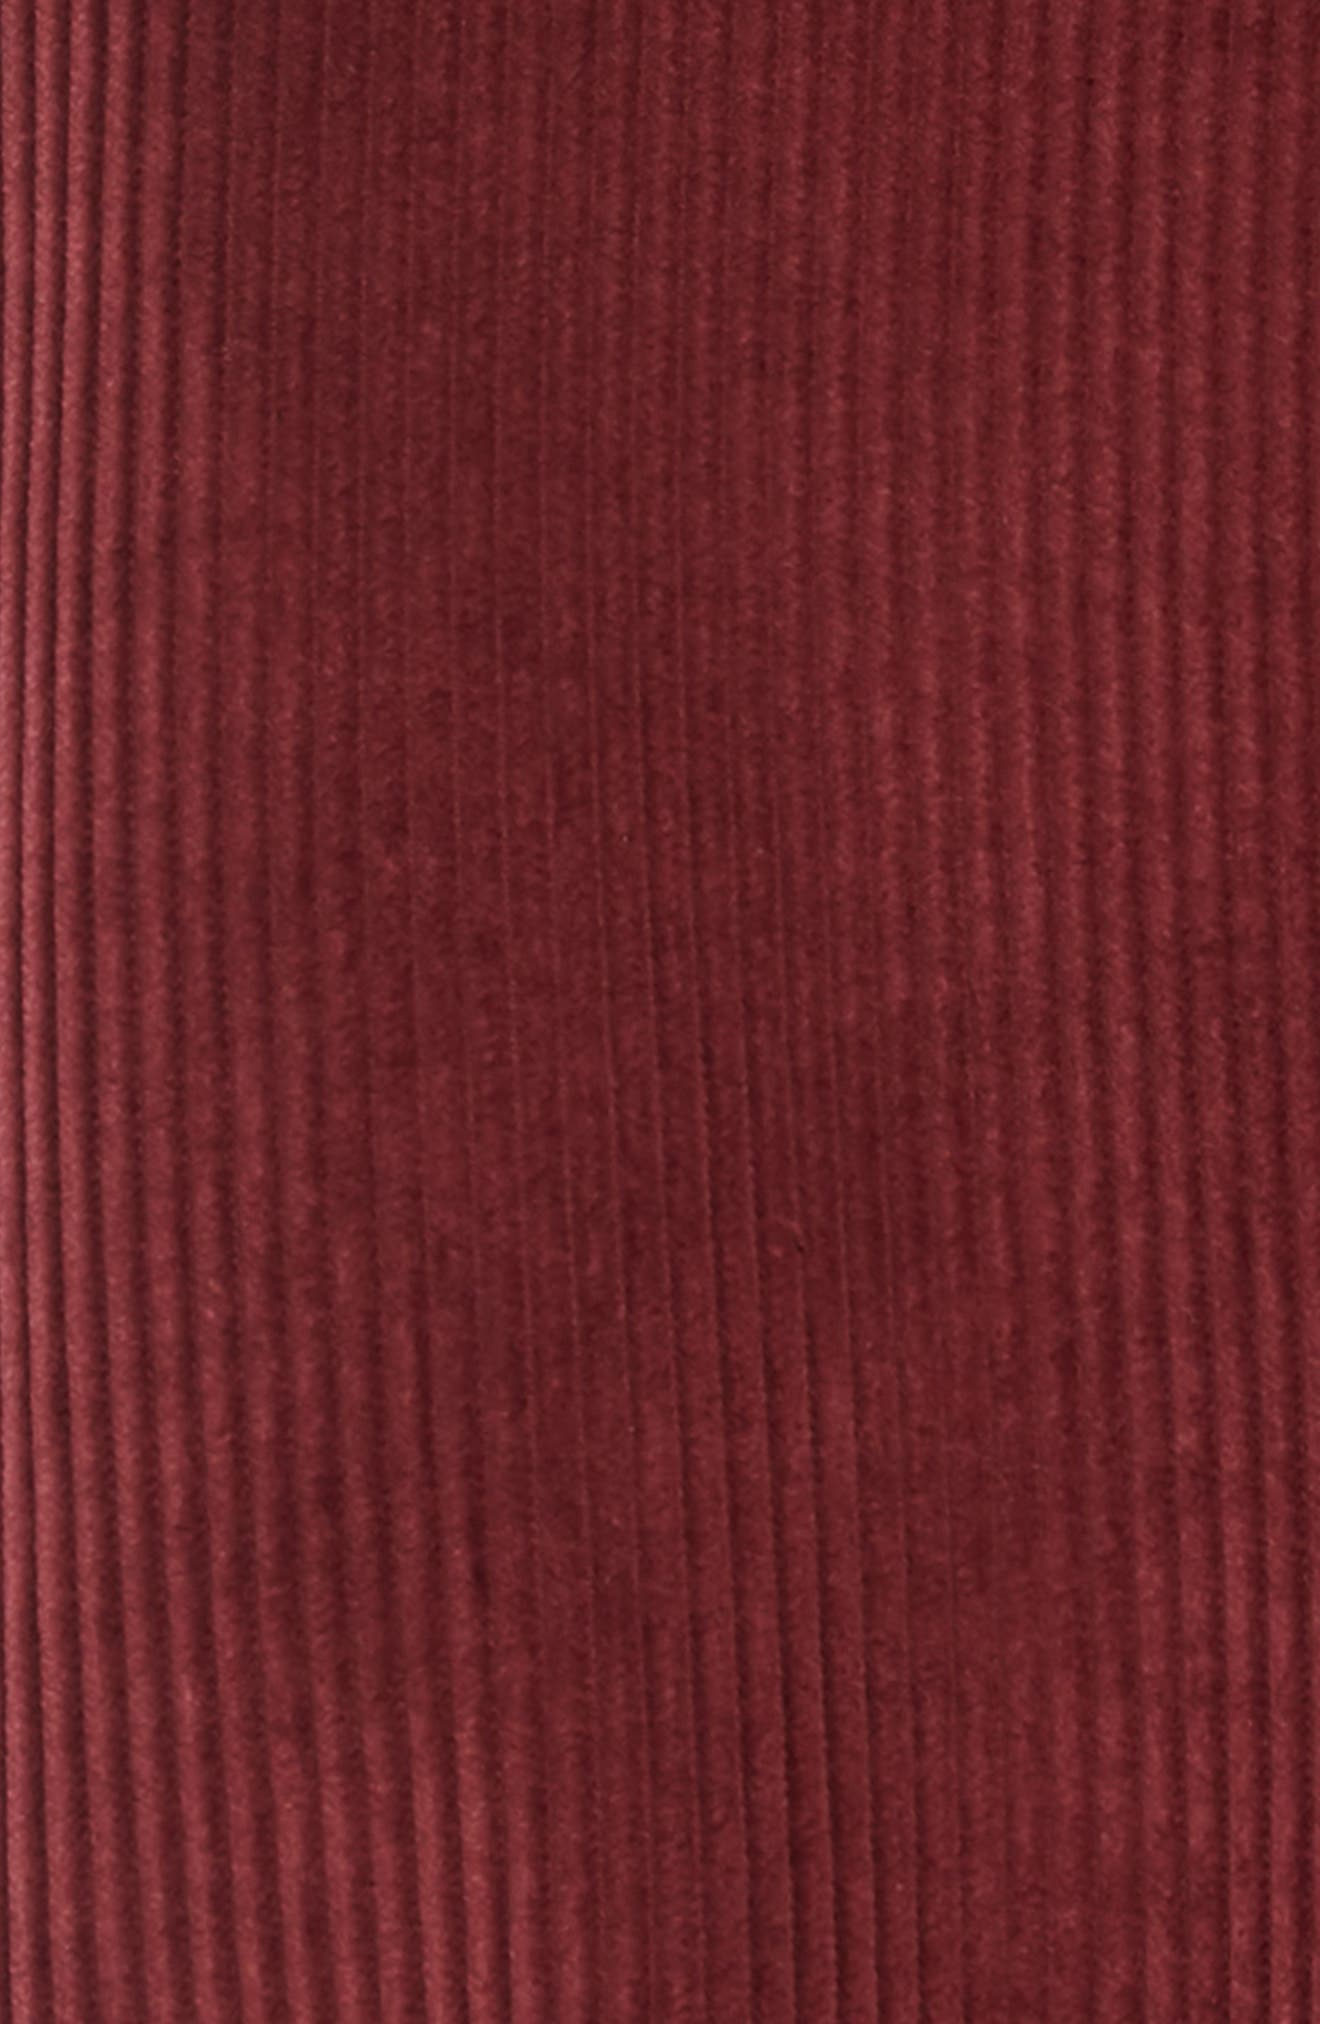 Corduroy Jumper Dress,                             Alternate thumbnail 3, color,                             RED TANNIN